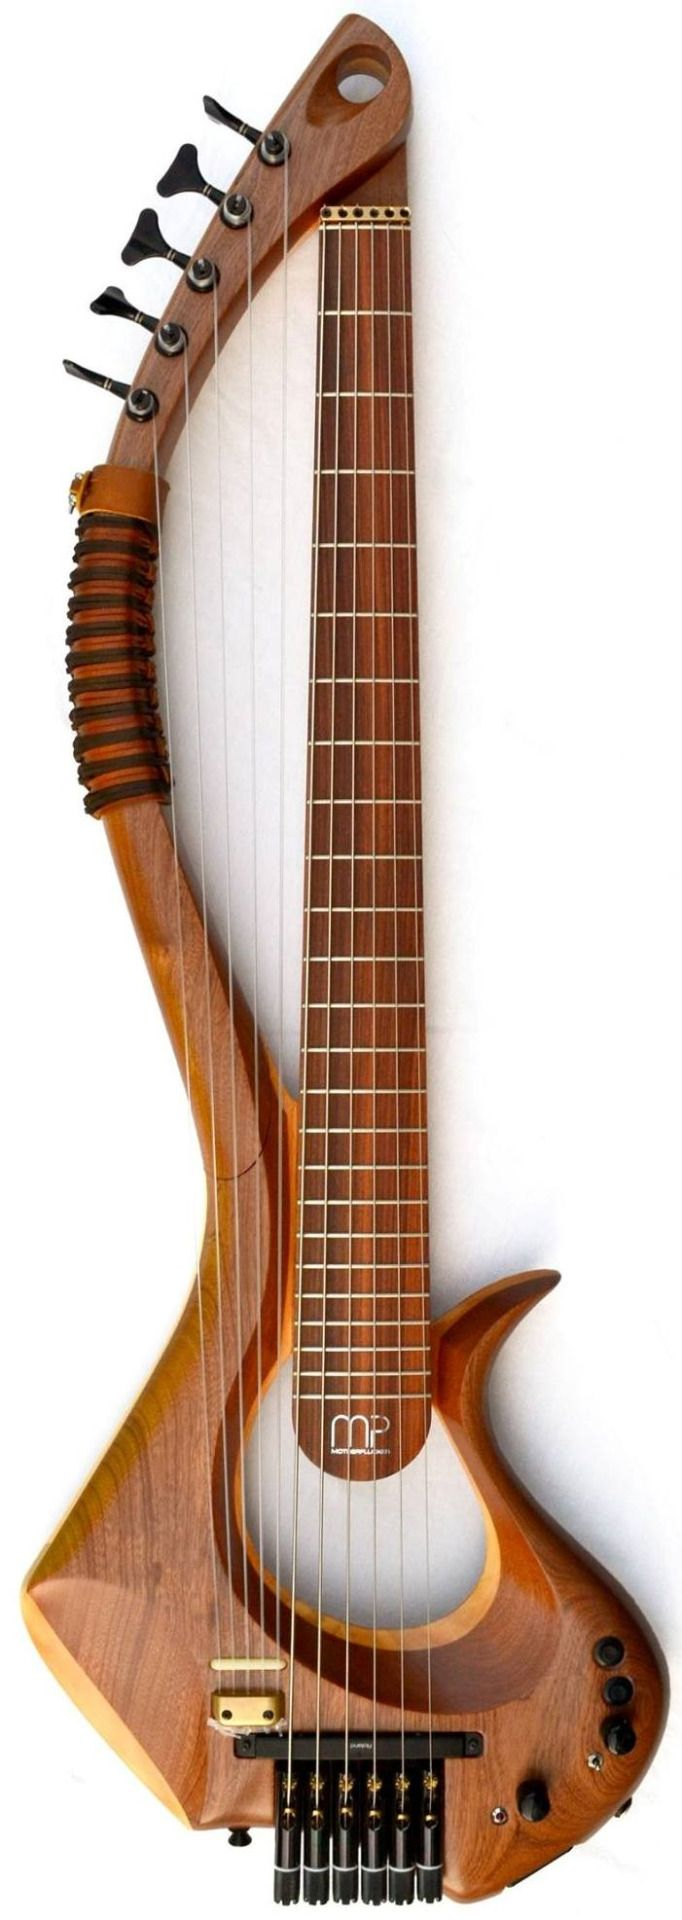 Mother Plucker Guitars Boudica 6 string Bass Harp Guitar --- https://www.pinterest.com/lardyfatboy/